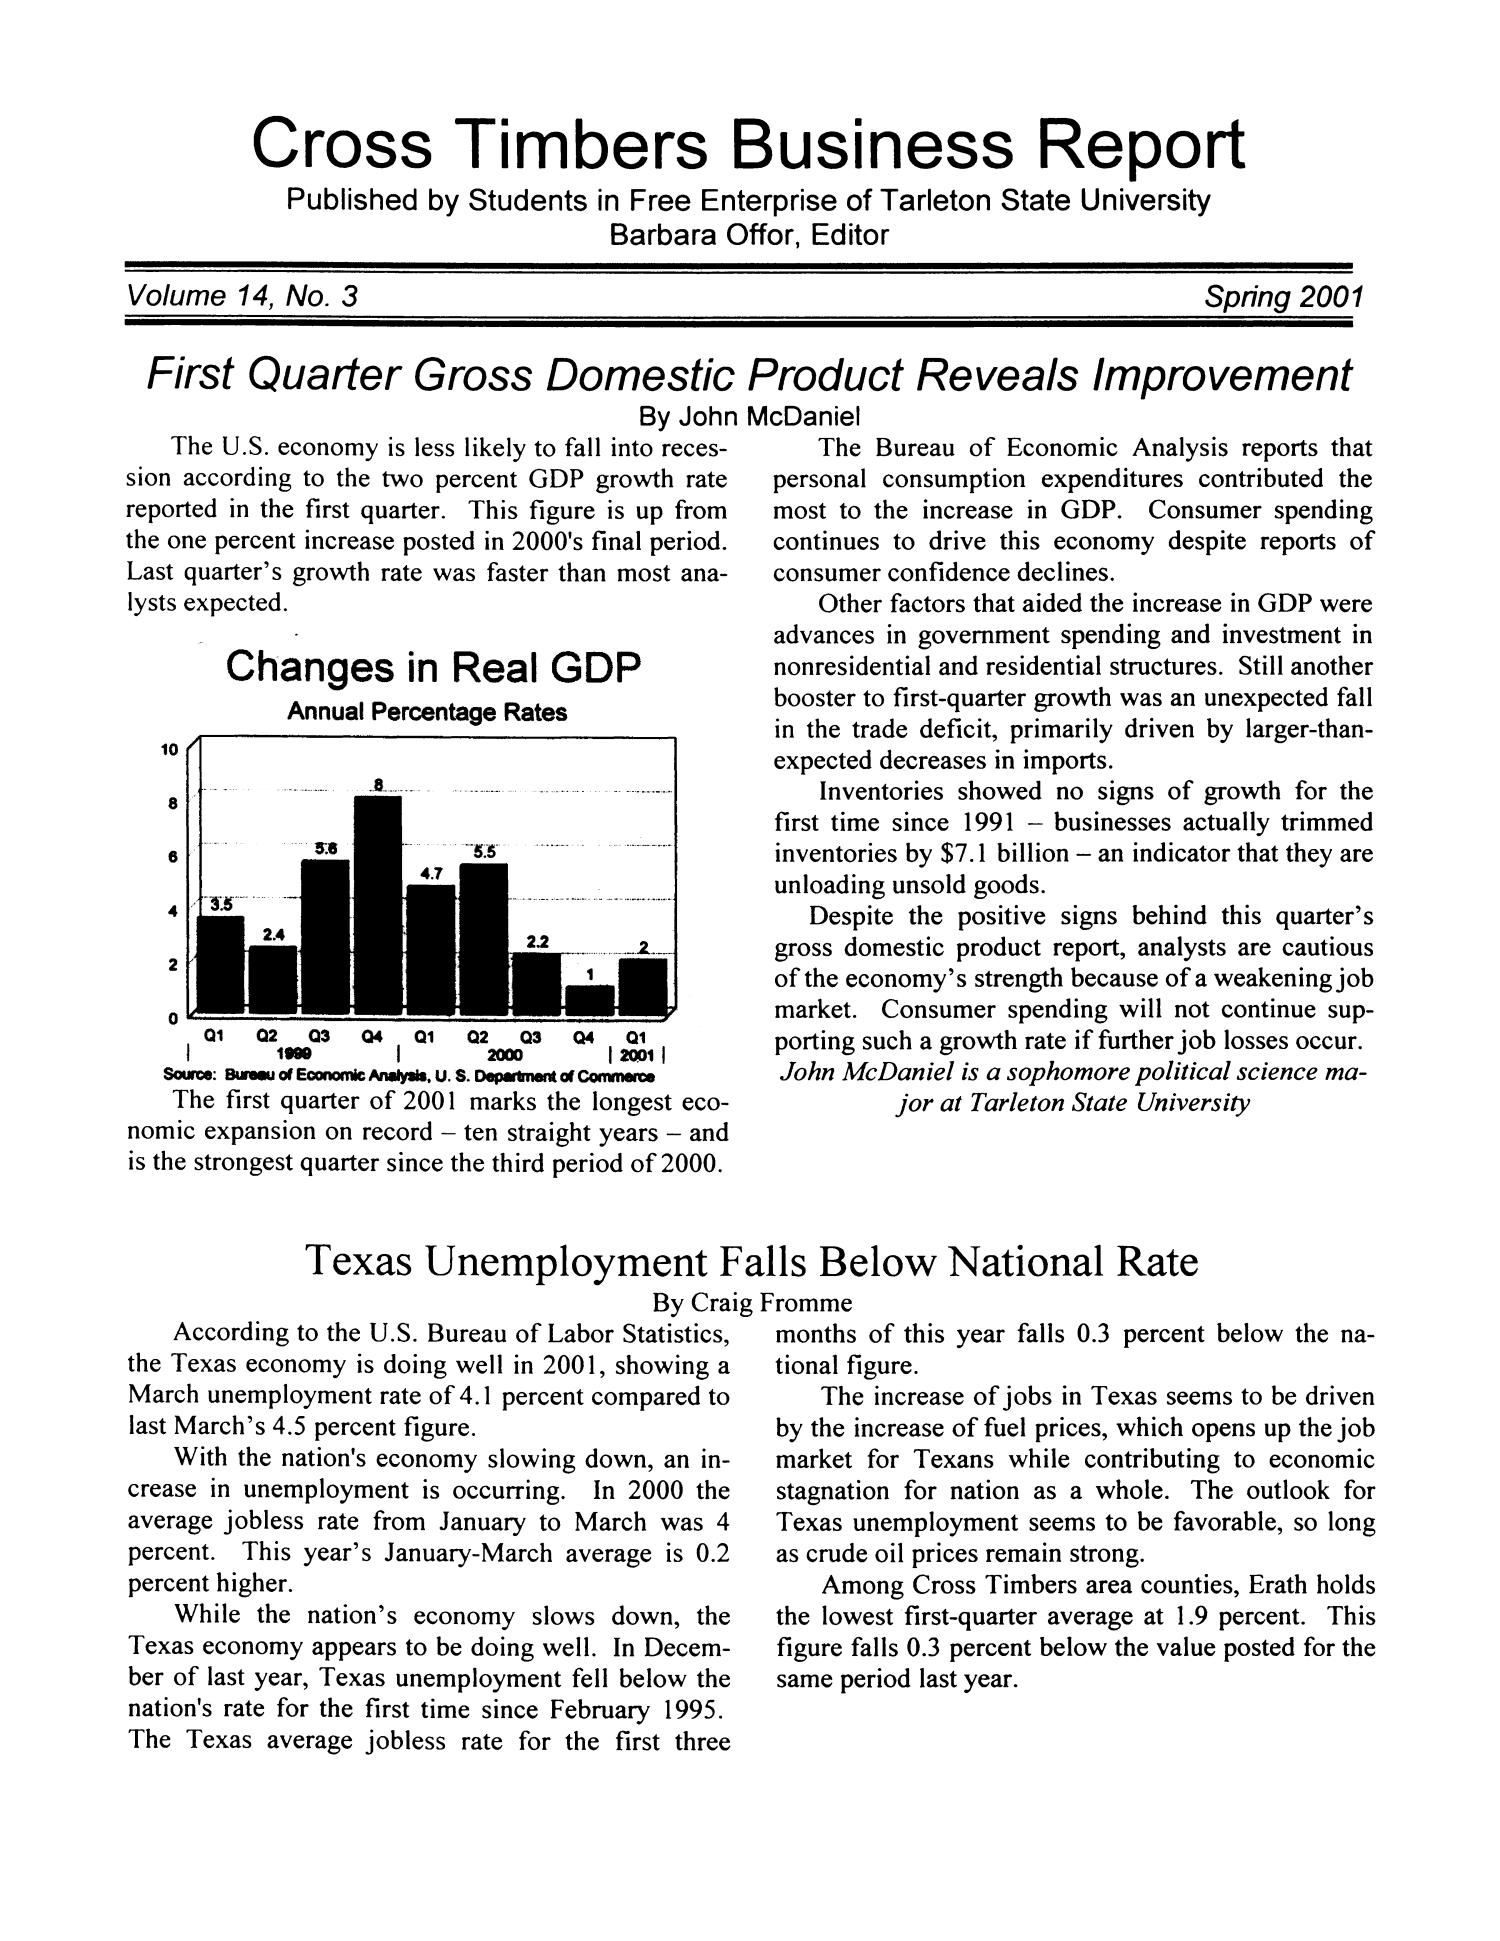 Cross Timbers Business Report, Volume 14, Number 3, Spring 2001                                                                                                      1